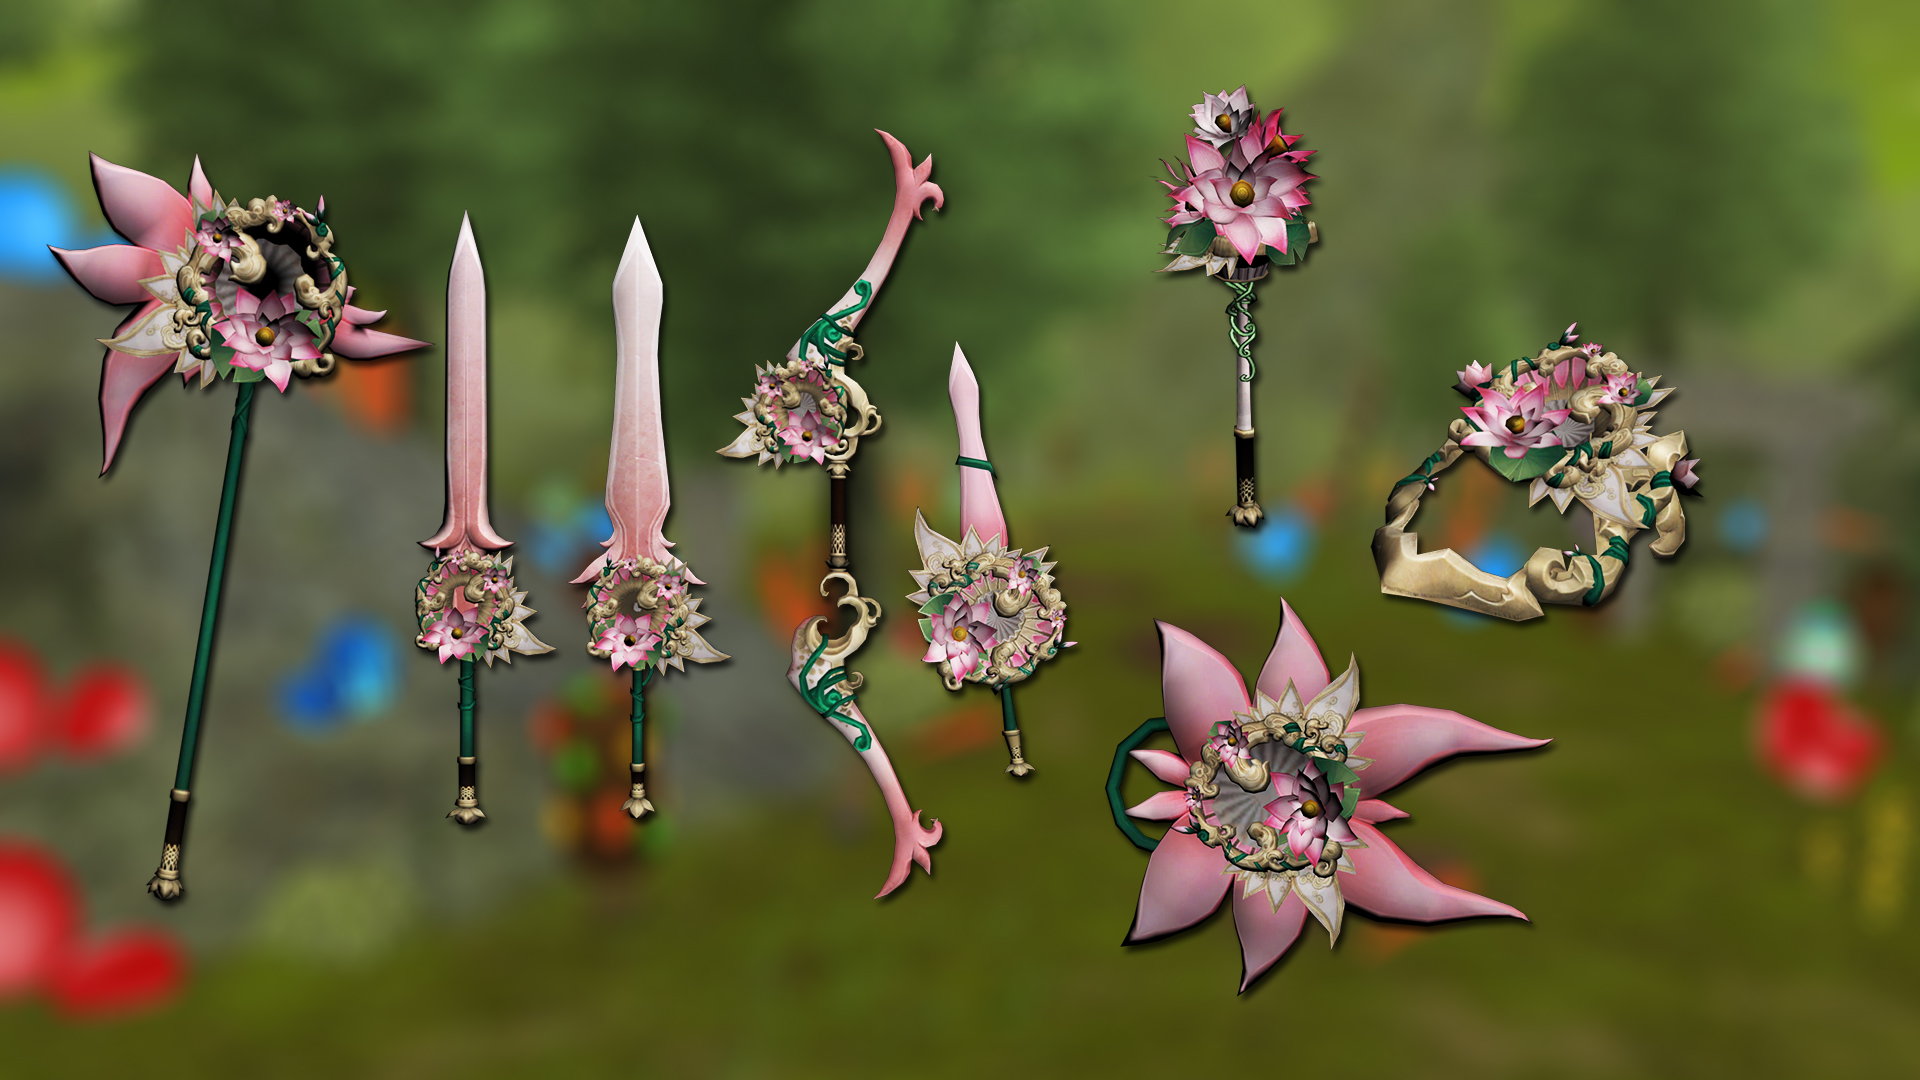 Easter/Spring 2020 weapons